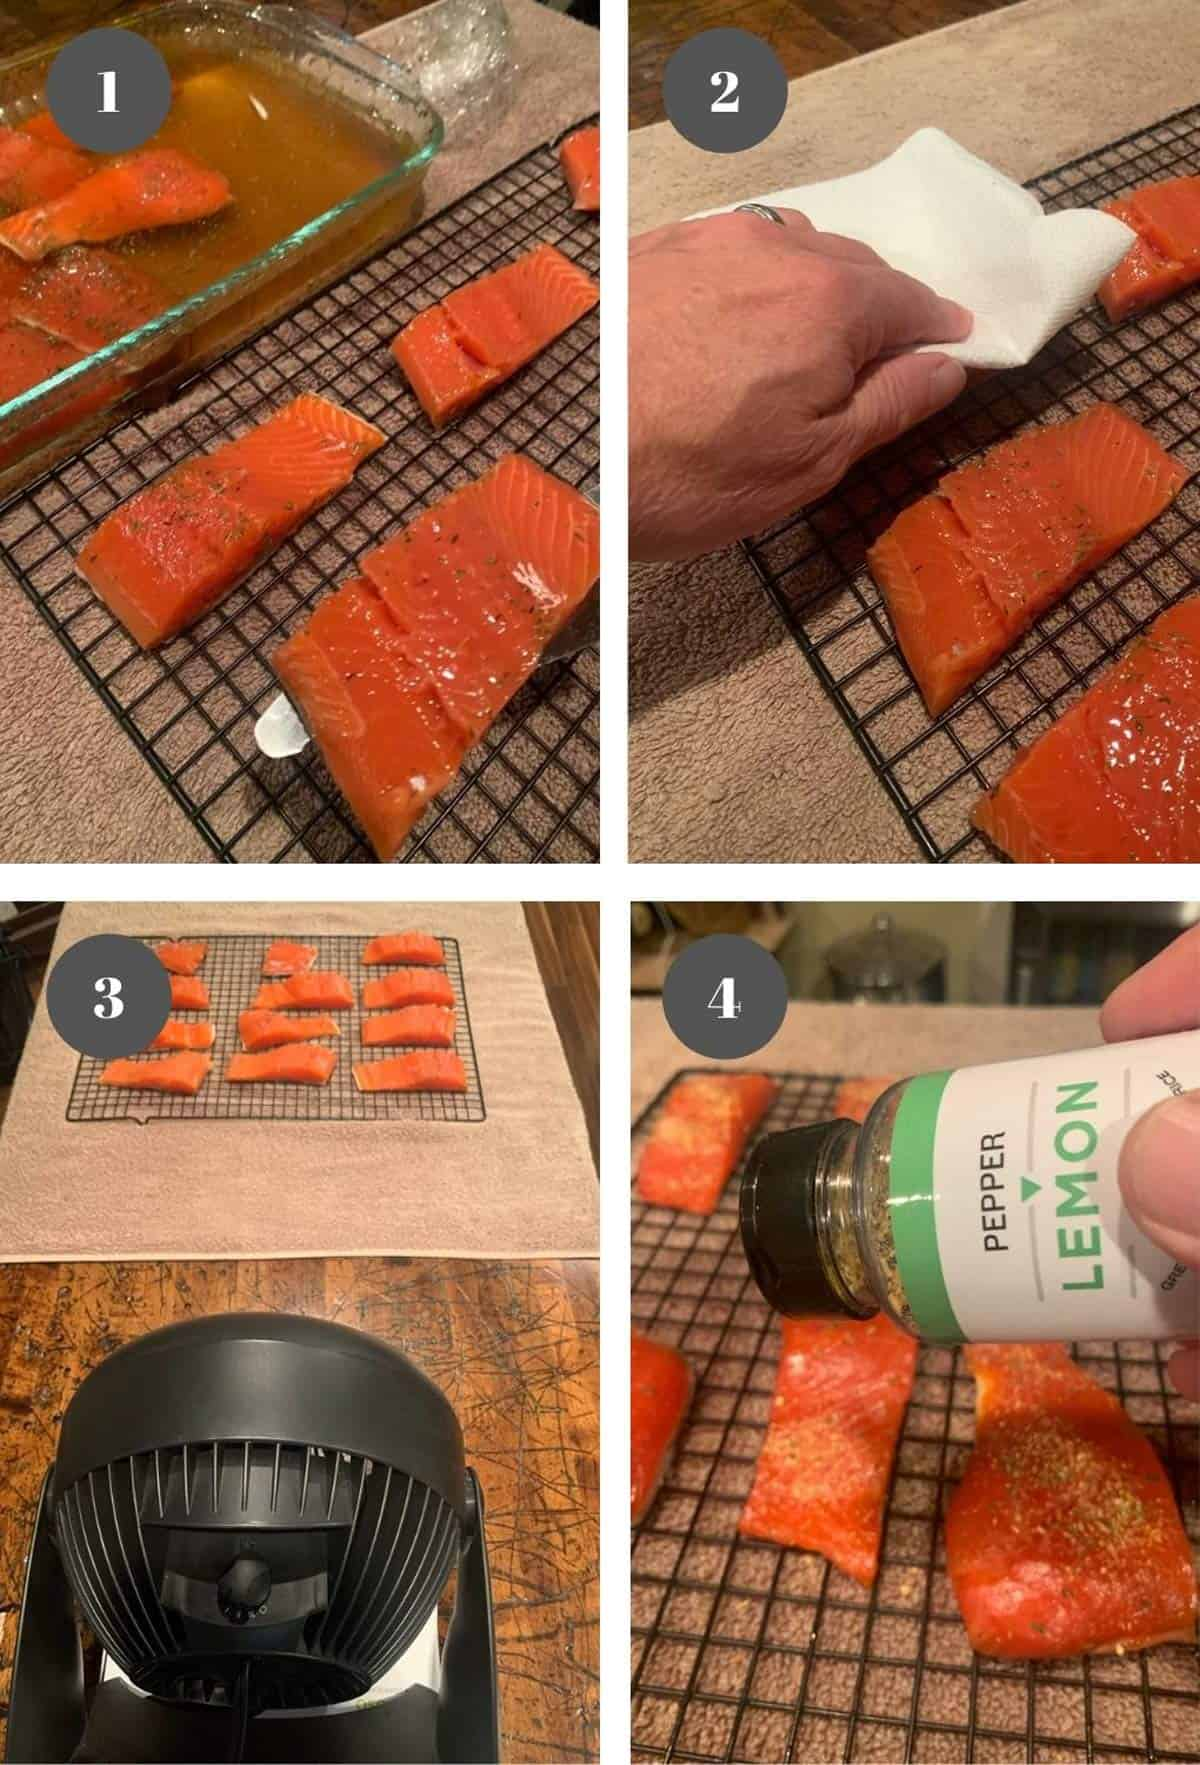 Placing slices of salmon on a wrack to dry.